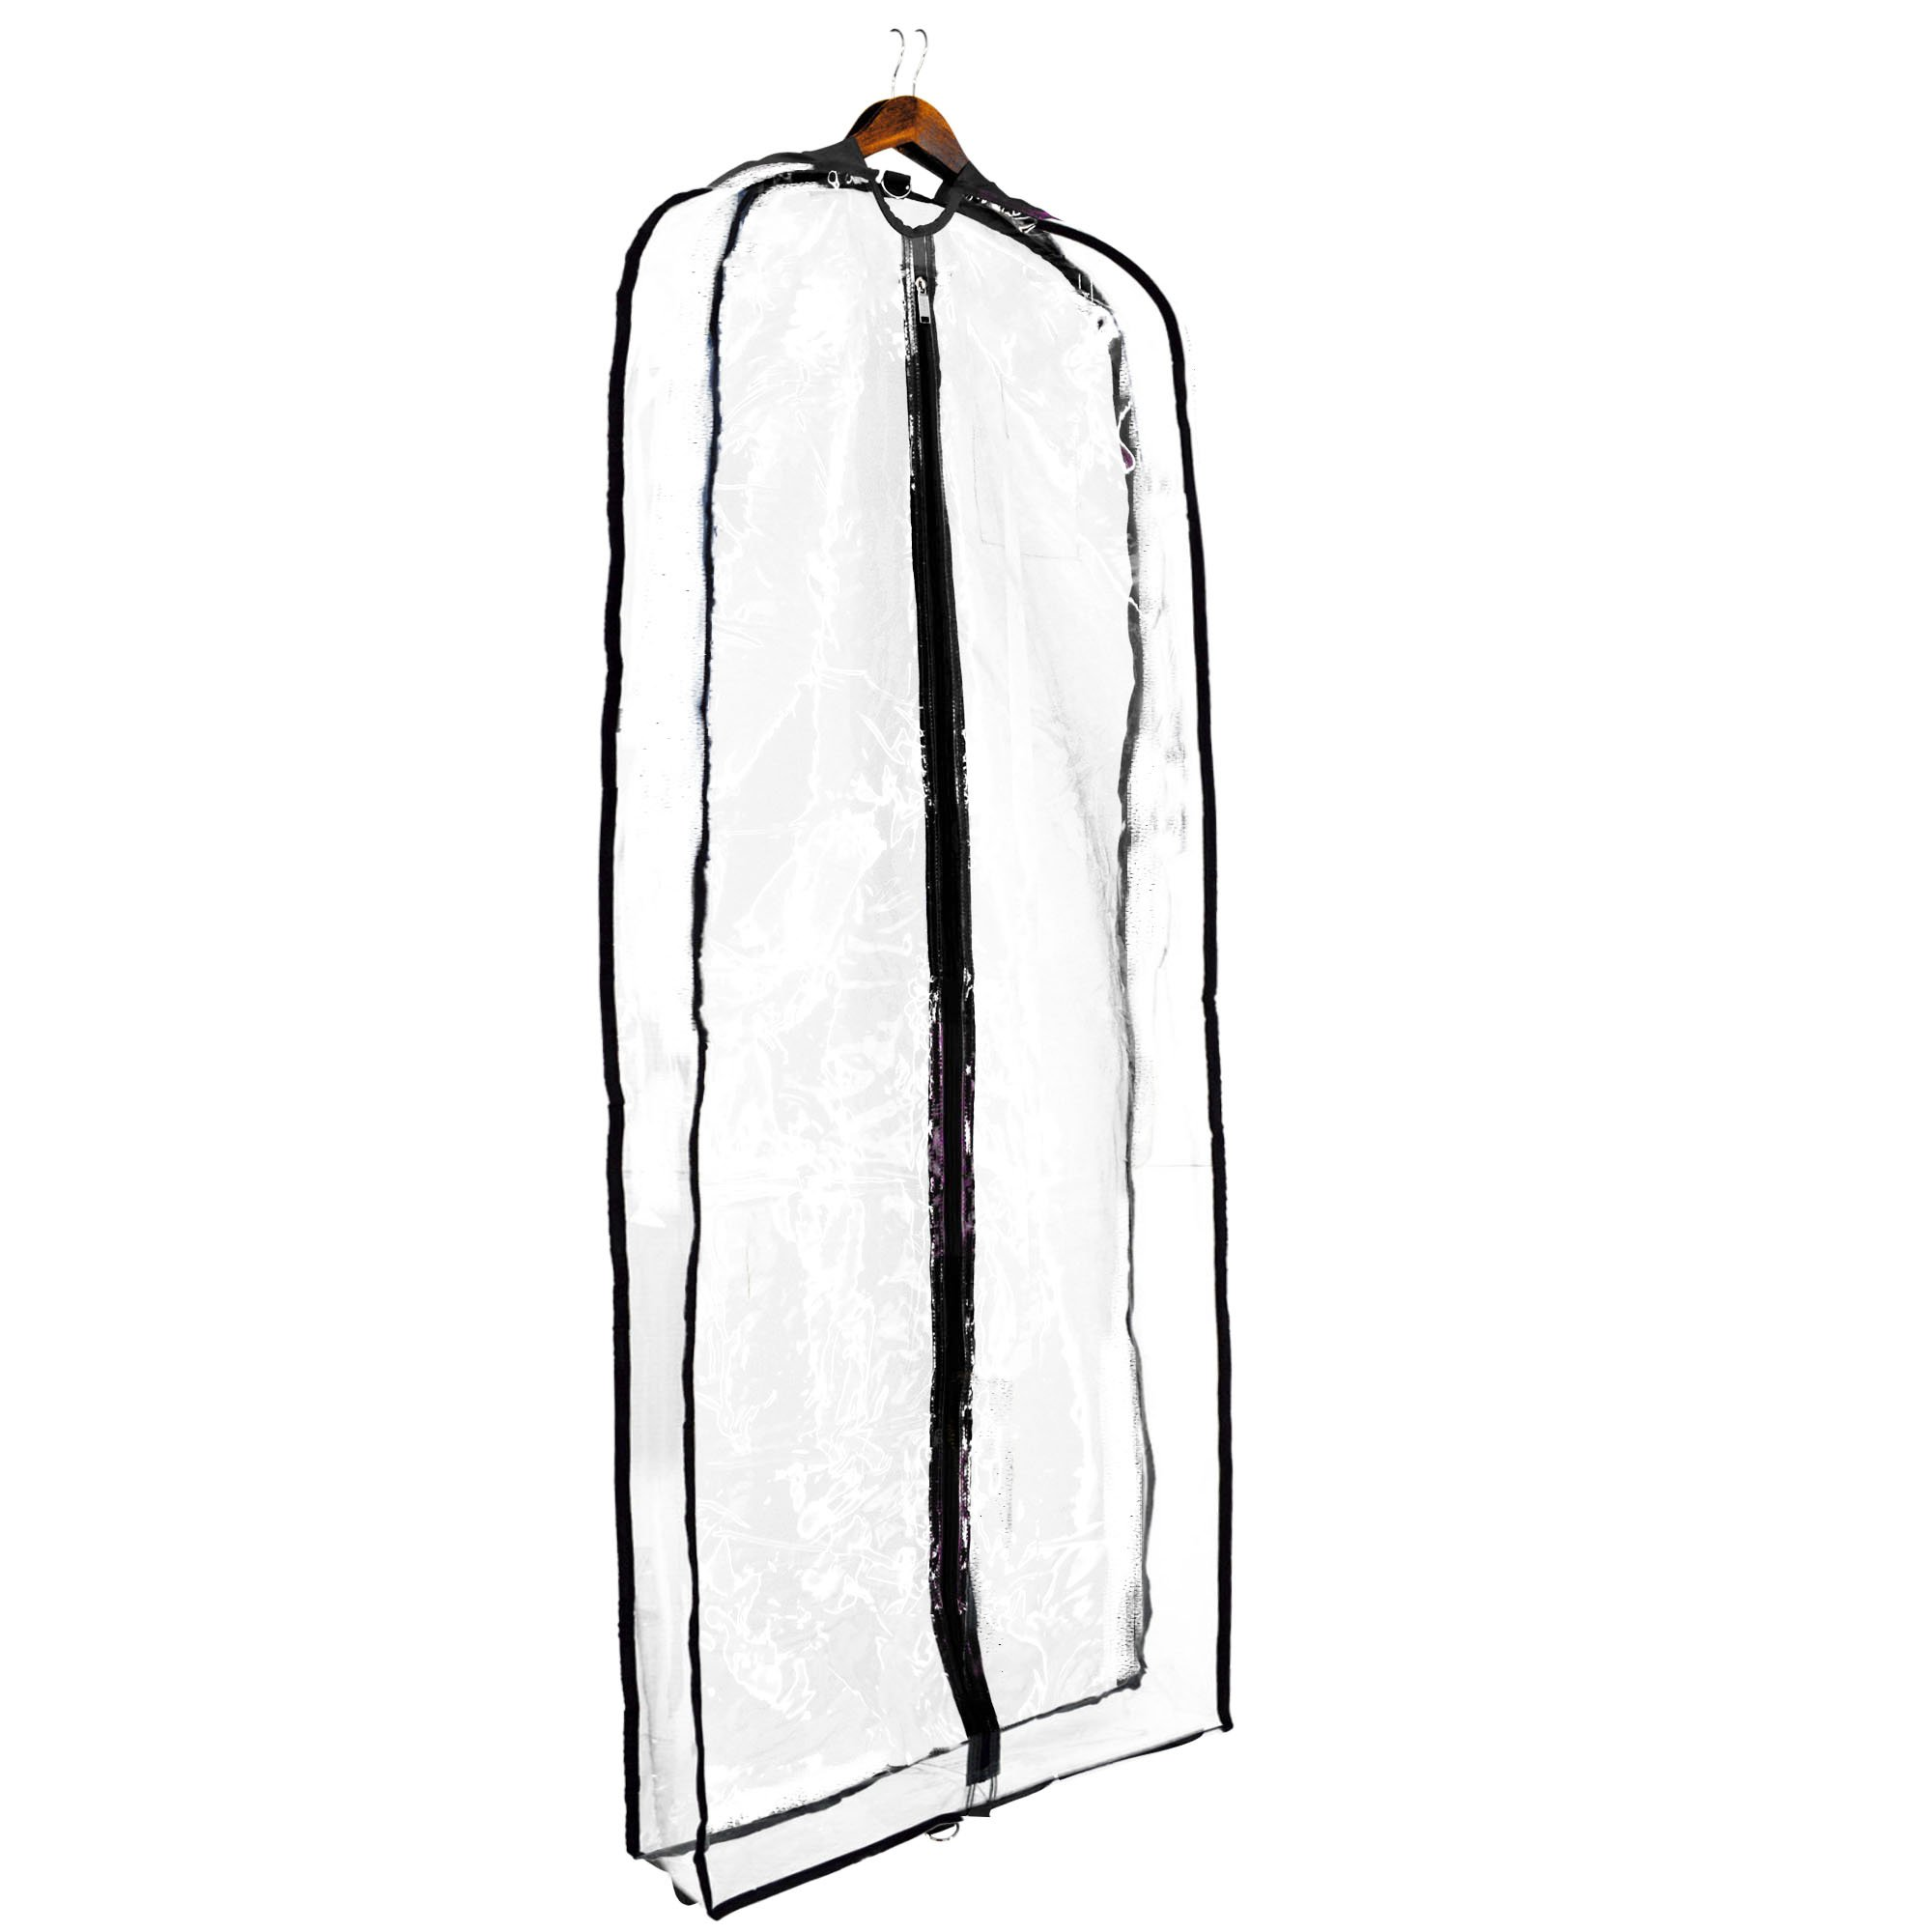 DALIX 60'' Clear Garment Bag Travel Costume Long Dress Gown Dance (Clear)